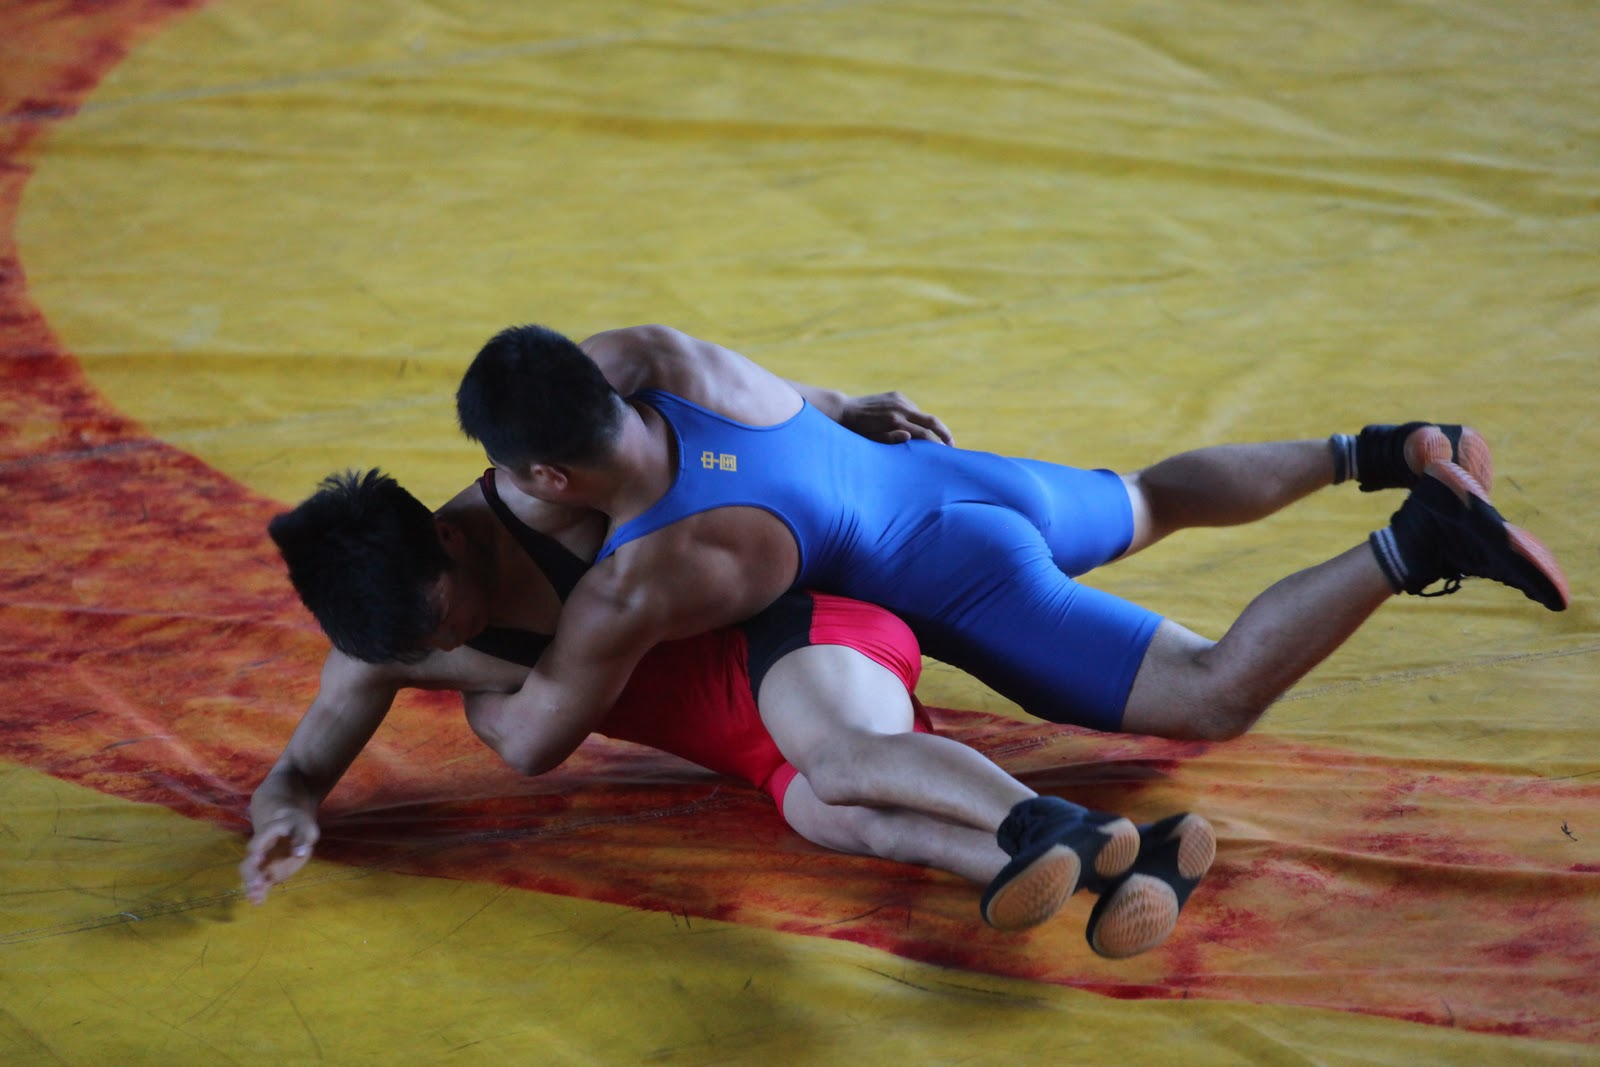 needs analysis greco roman wrestling physical education essay Training needs analysis essaysit is extremely important that learner support is established from the outset with any group in the modern learning environment this support must cater for a whole range of needs including emotional, financial, physical and practical.